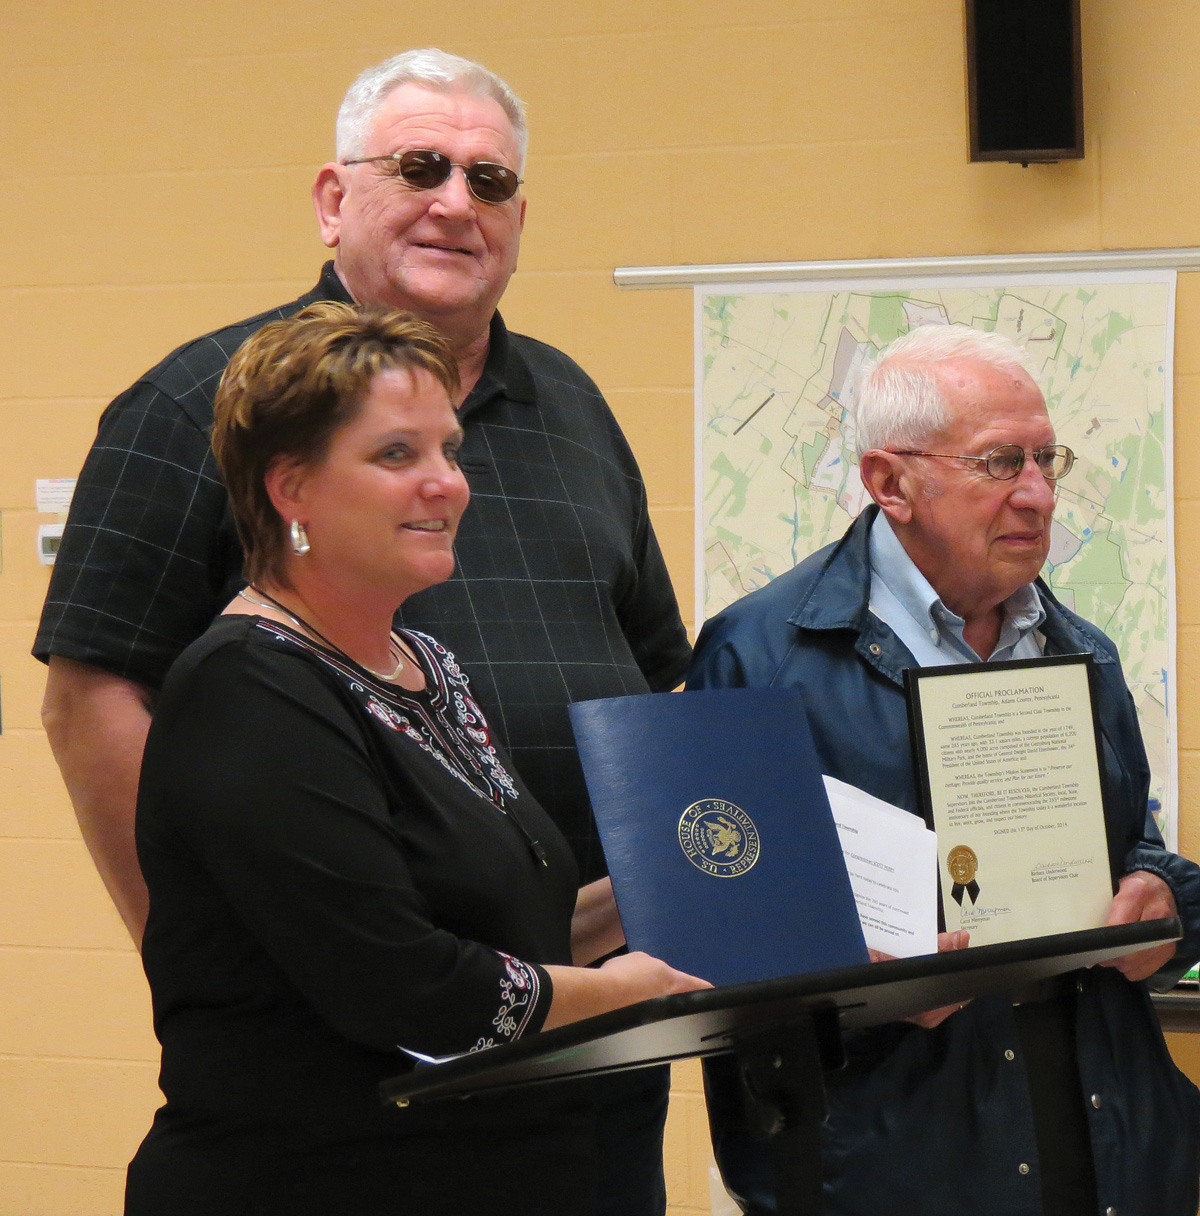 John Horner receiving a letter of congratulations from the office of Rep. Scott Perry